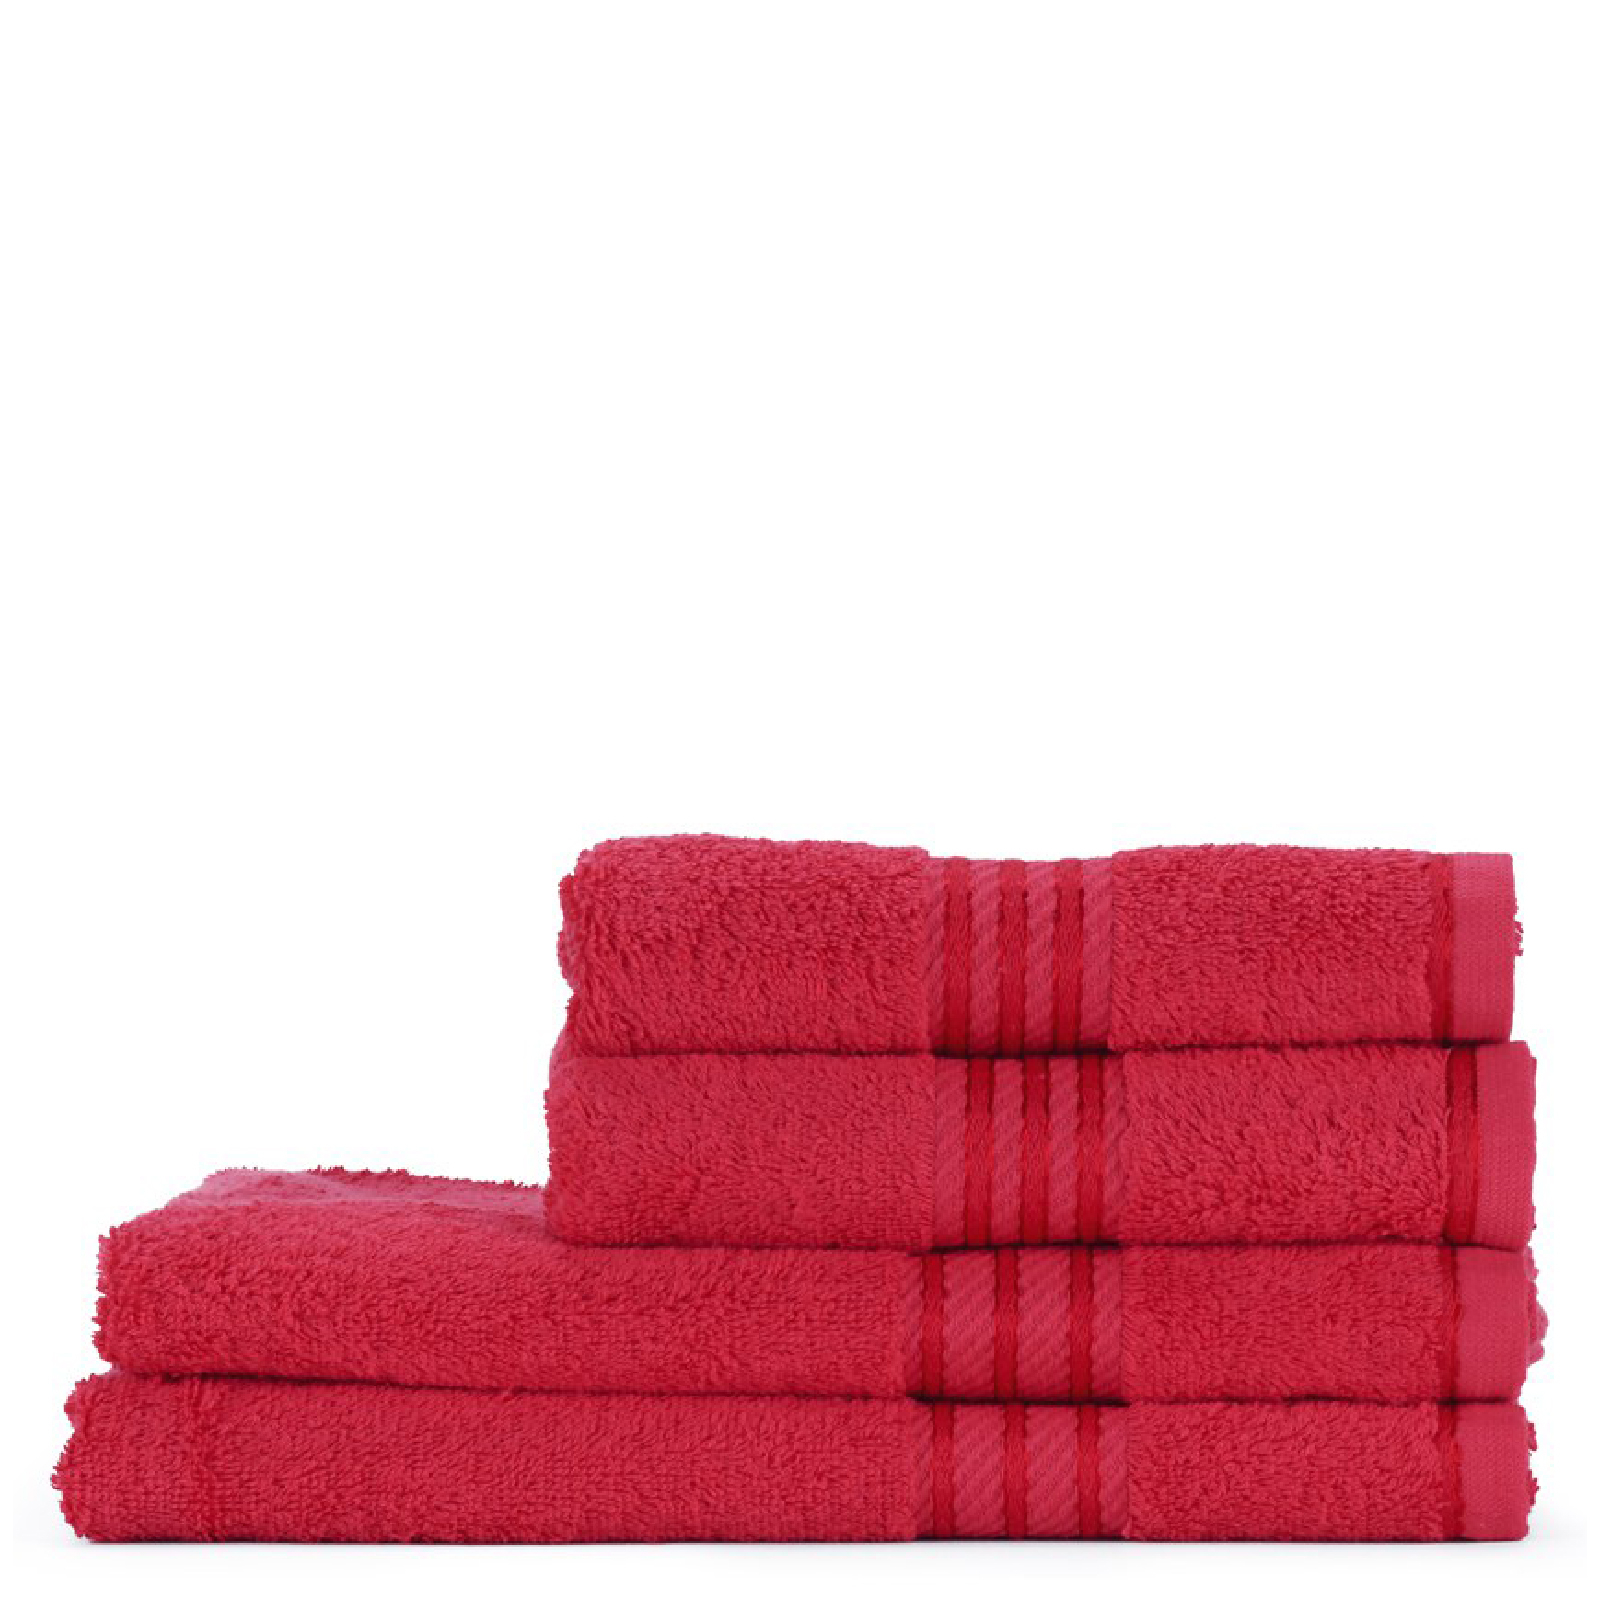 Restmor 100% Egyptian Cotton 4 Piece Supreme Towel Bale Set (500gsm) - Red